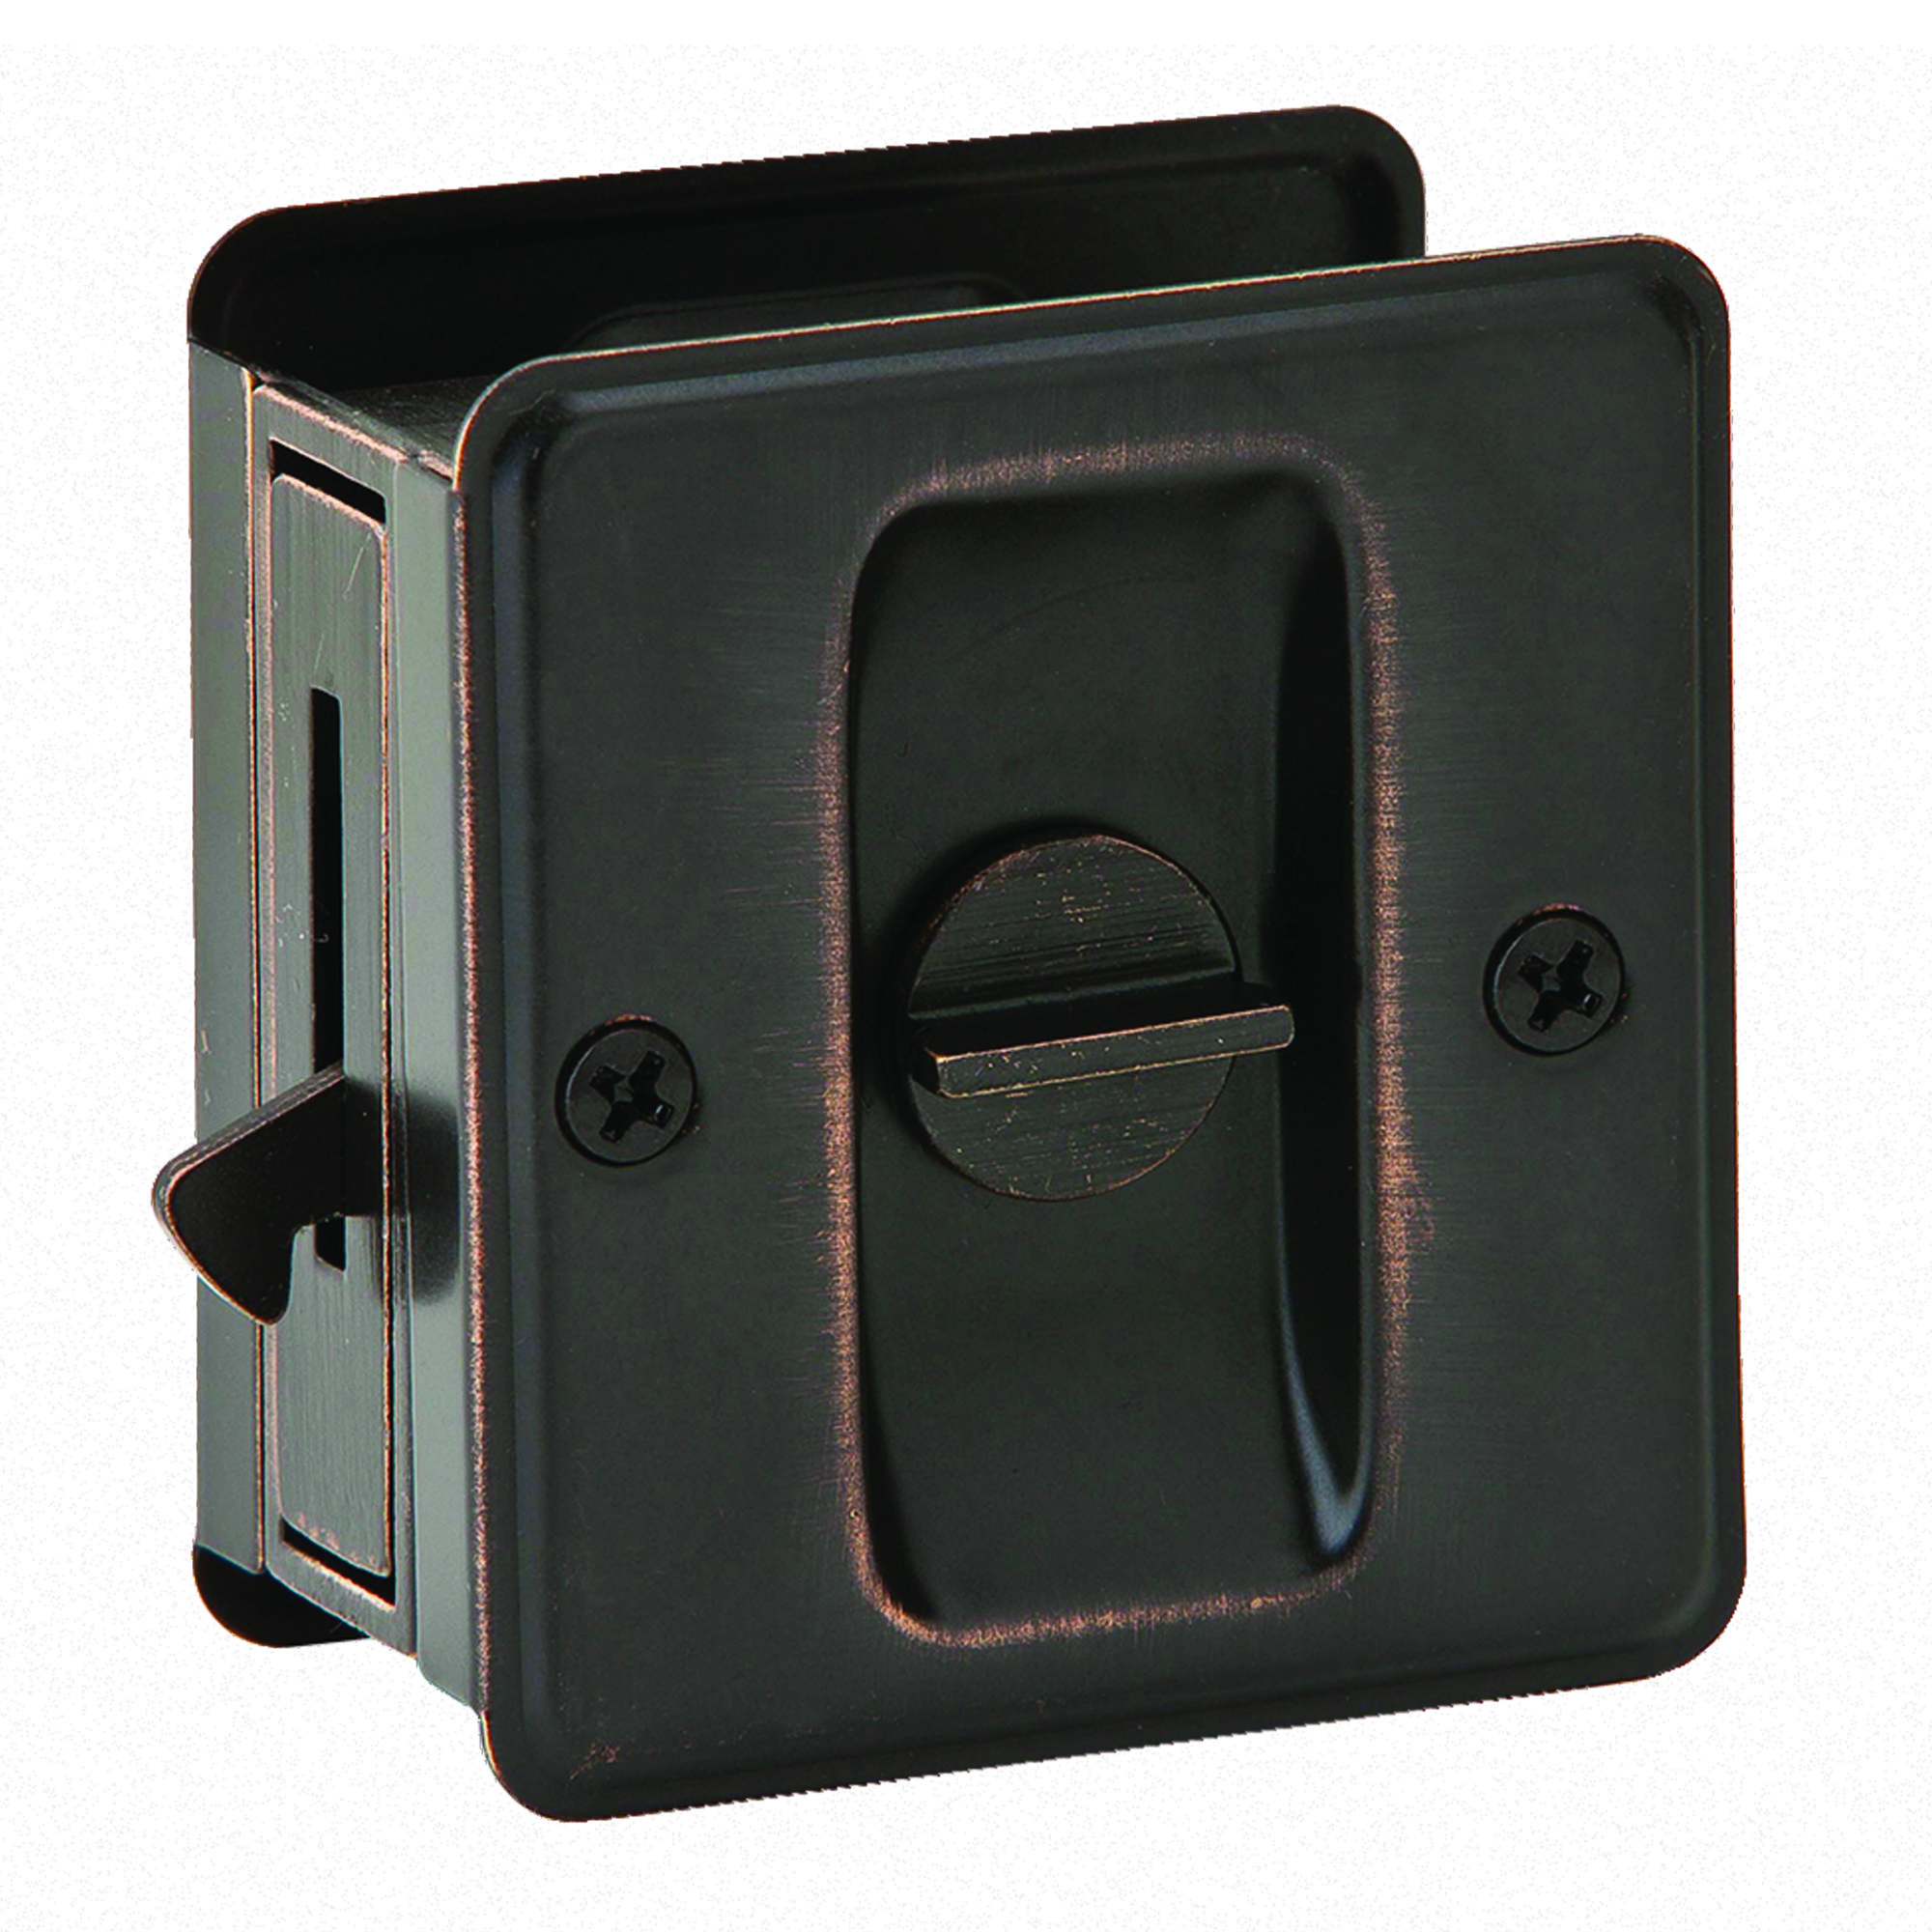 PRIVACY POCKET DOOR LOCK AGED BRONZE